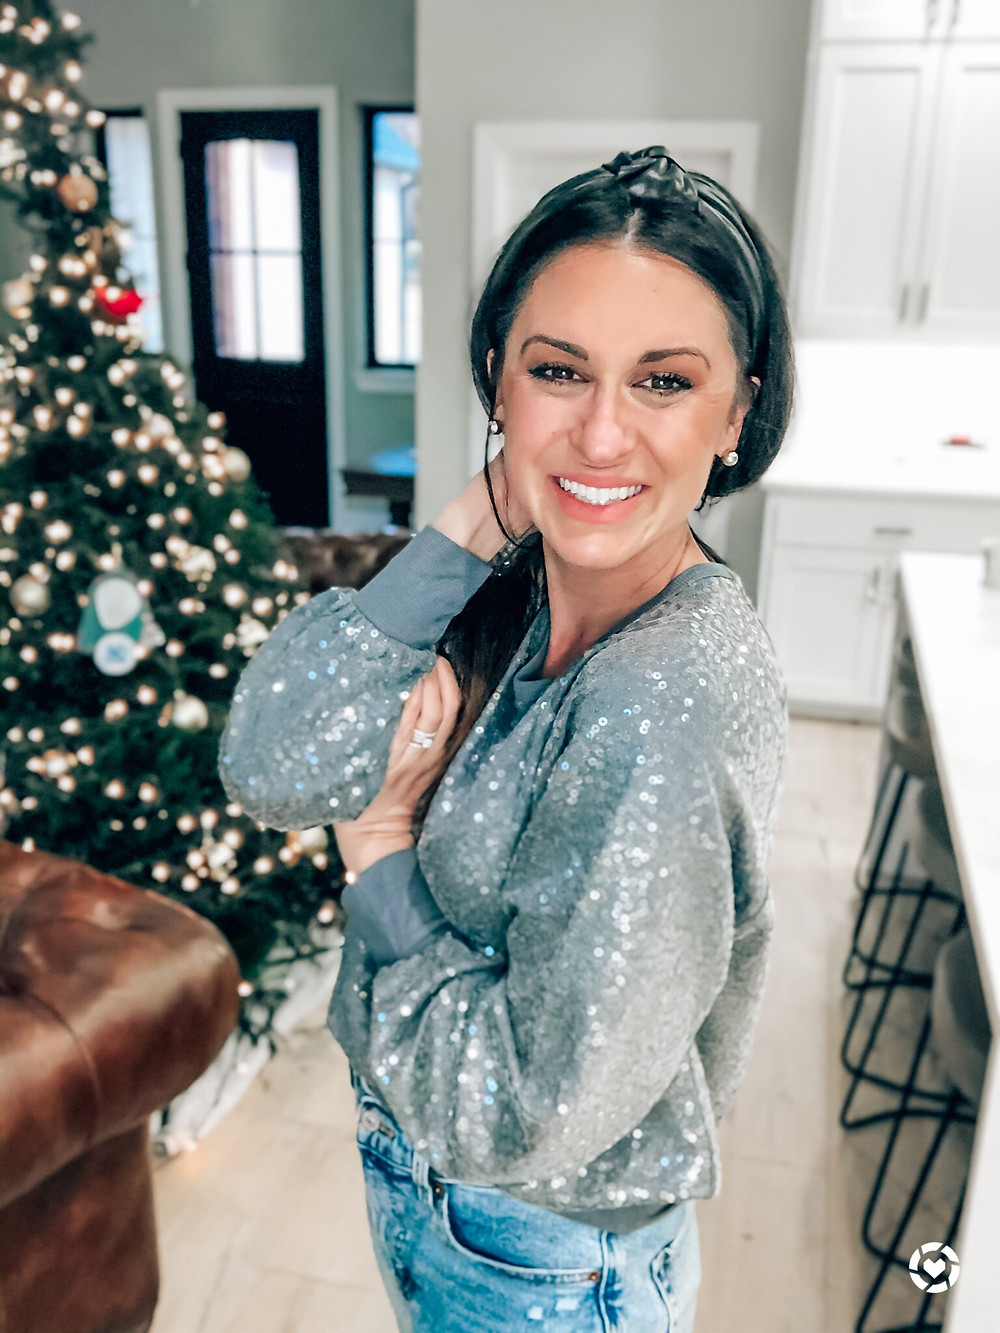 Holiday Sequin Crewneck Sweater and Mom Jeans for Christmas